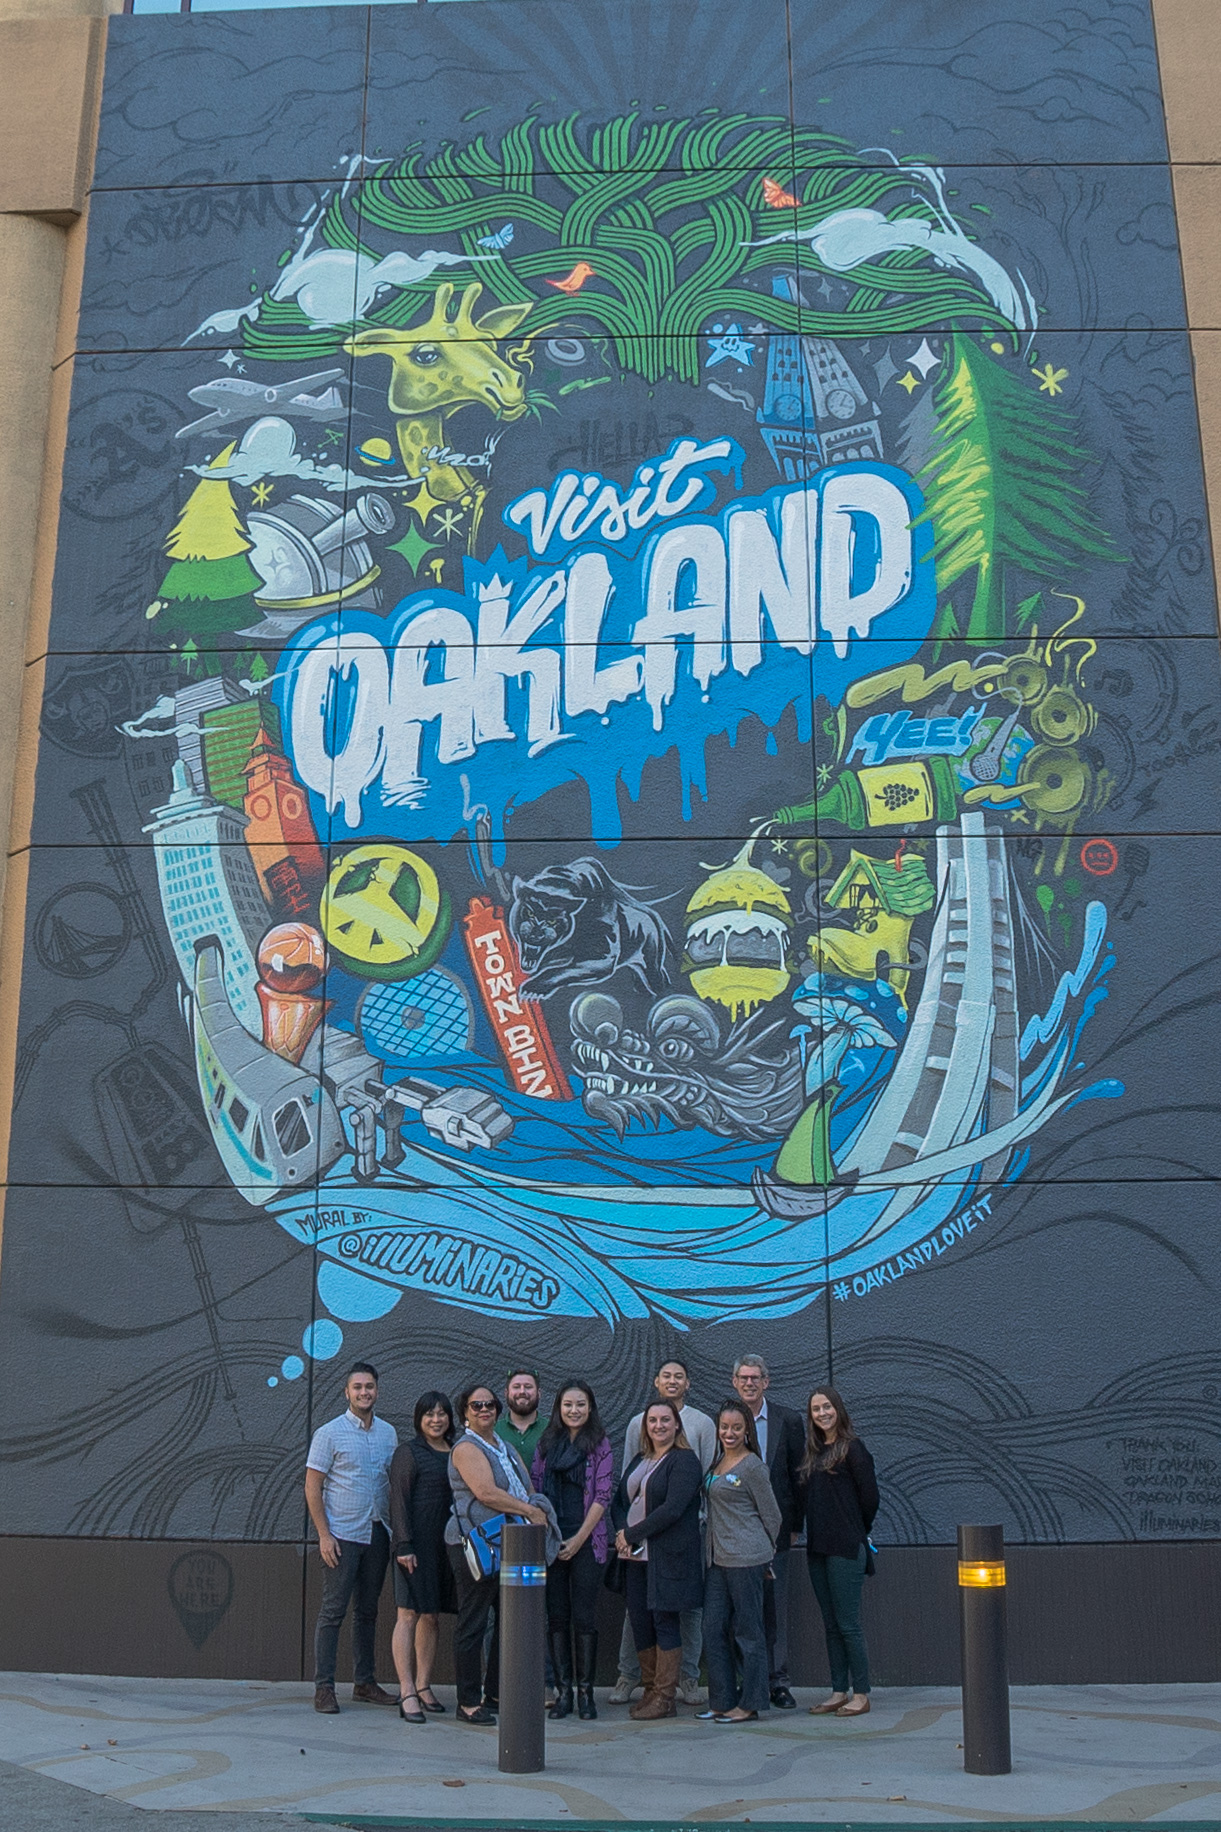 Visit Oakland Debuts City Mural For Official Selfie Wall